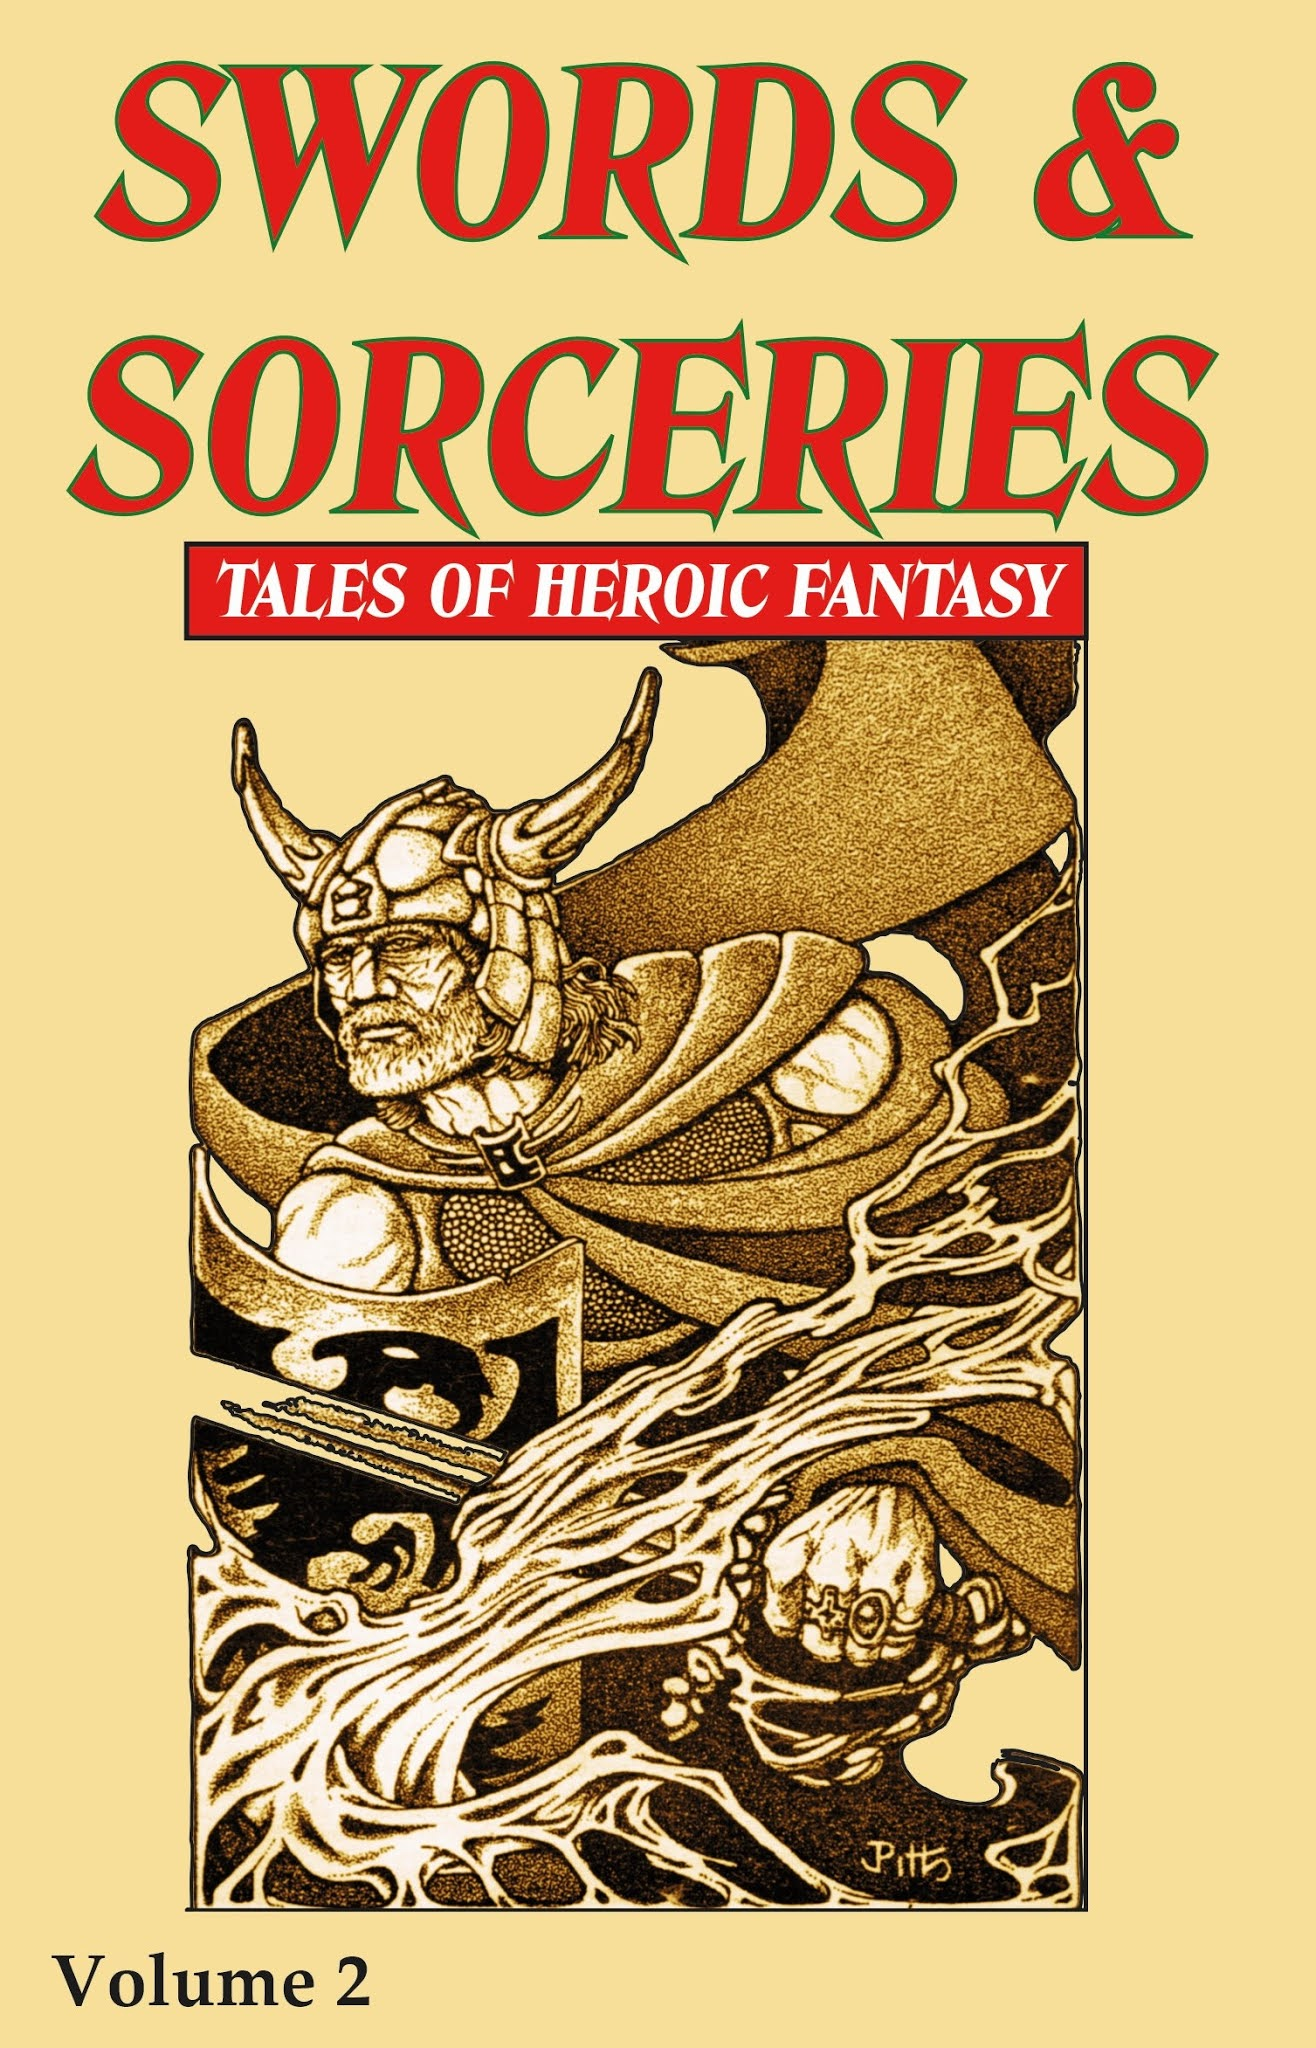 Swords & Sorceries: Tales of Heroic Fantasy Volume 2